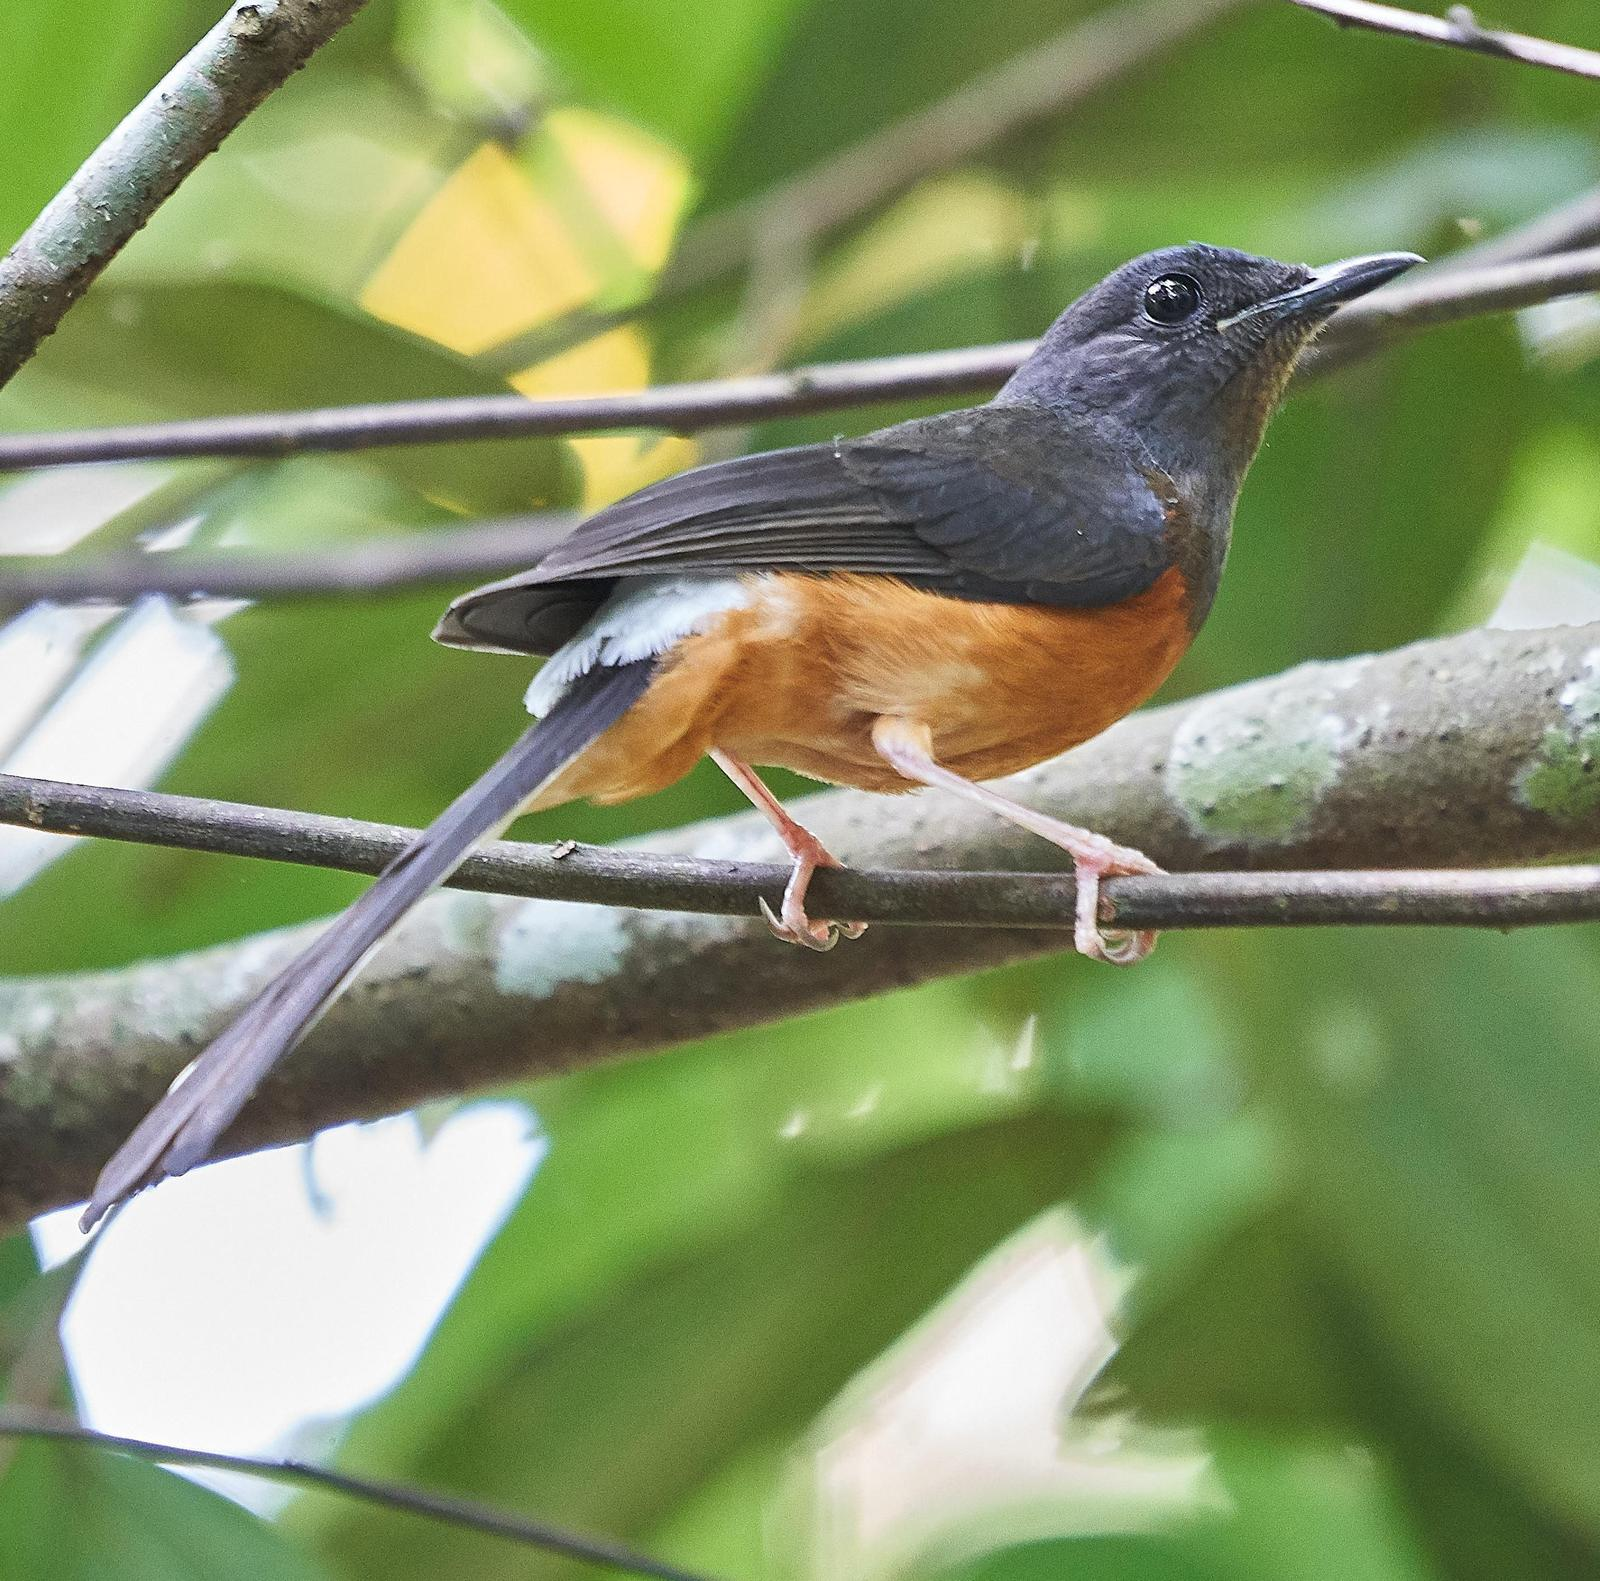 White-rumped Shama Photo by Steven Cheong